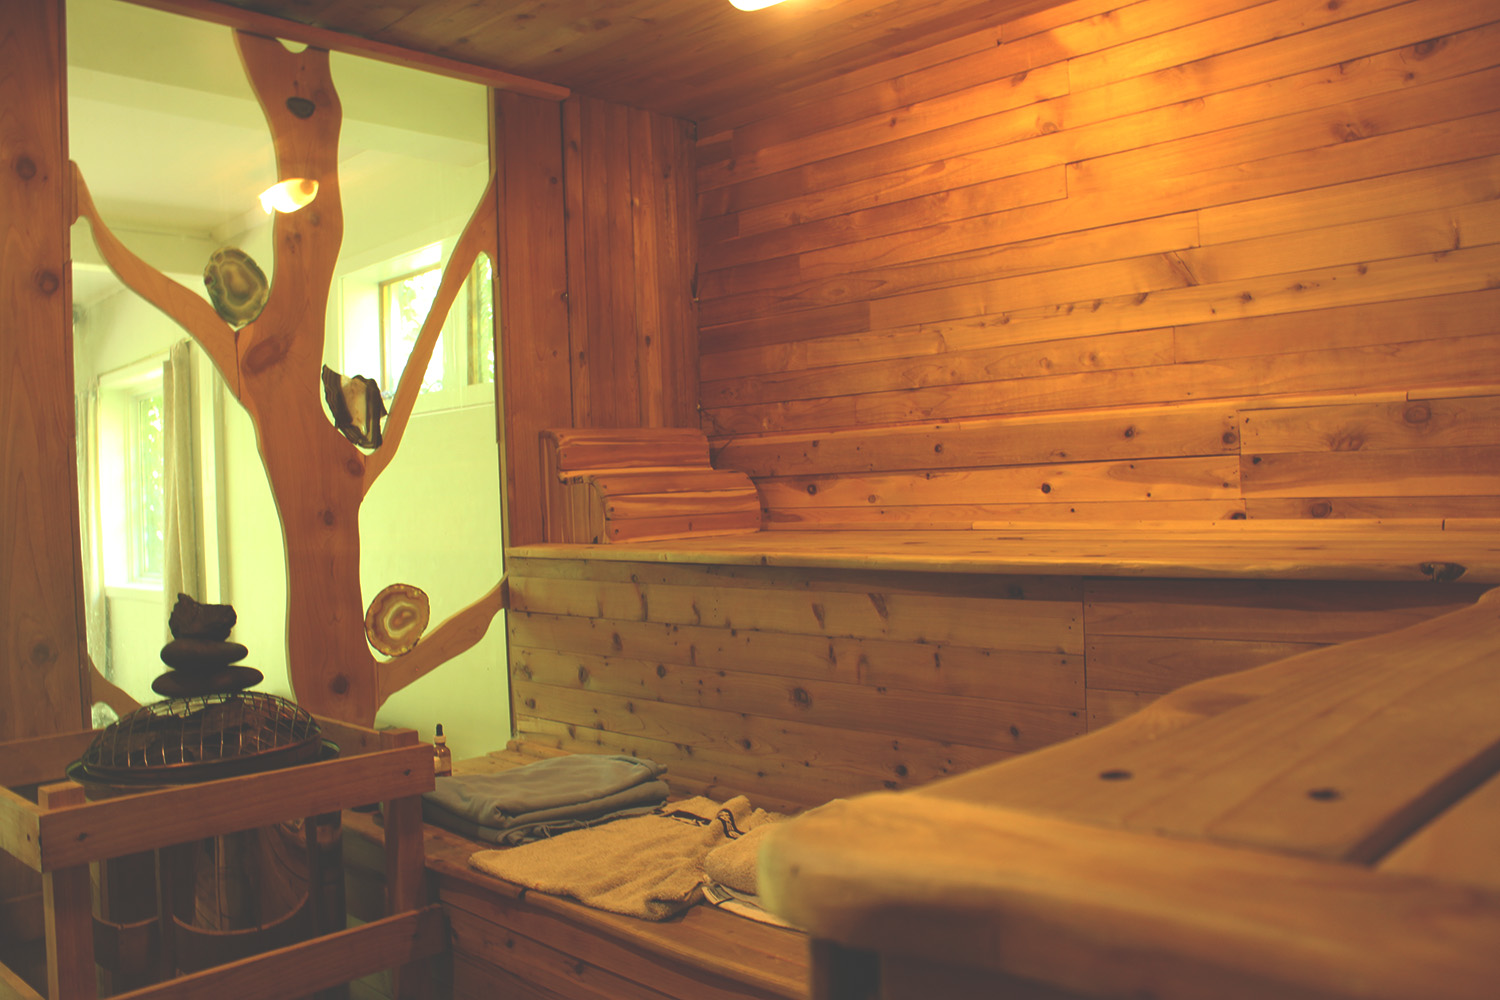 View of indoor custom wood sauna